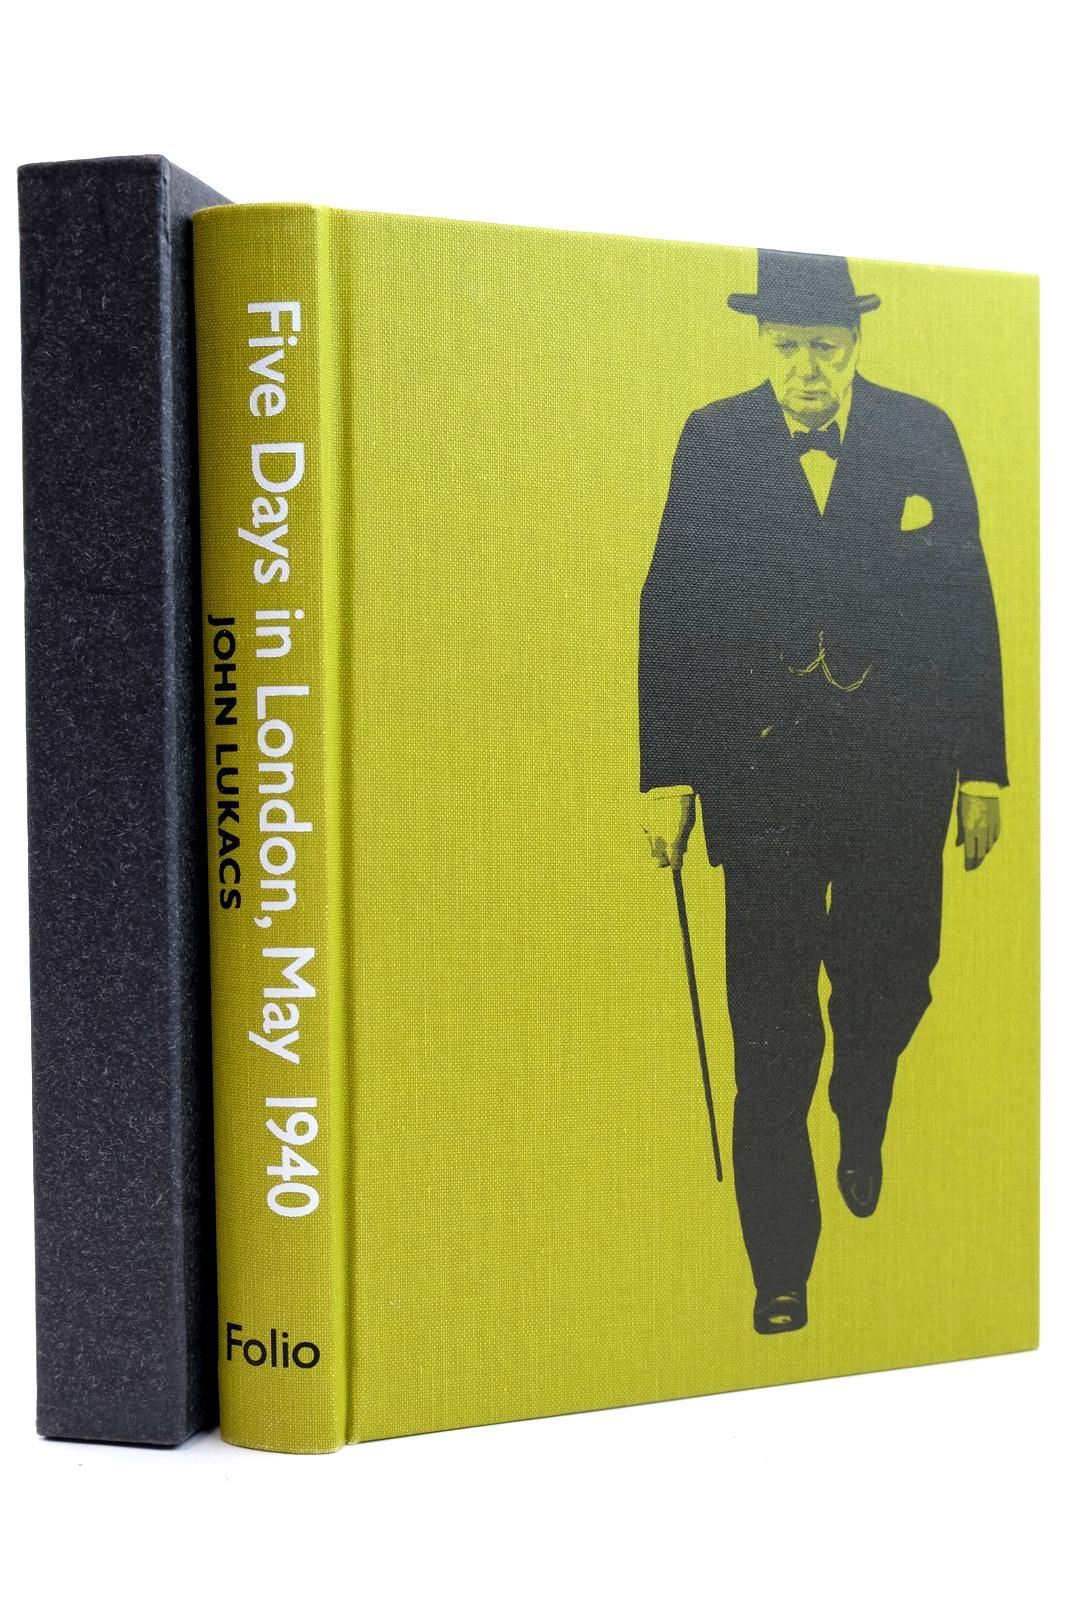 Photo of FIVE DAYS IN LONDON, MAY 1940 written by Lukacs, John Ziegler, Philip published by Folio Society (STOCK CODE: 2131802)  for sale by Stella & Rose's Books